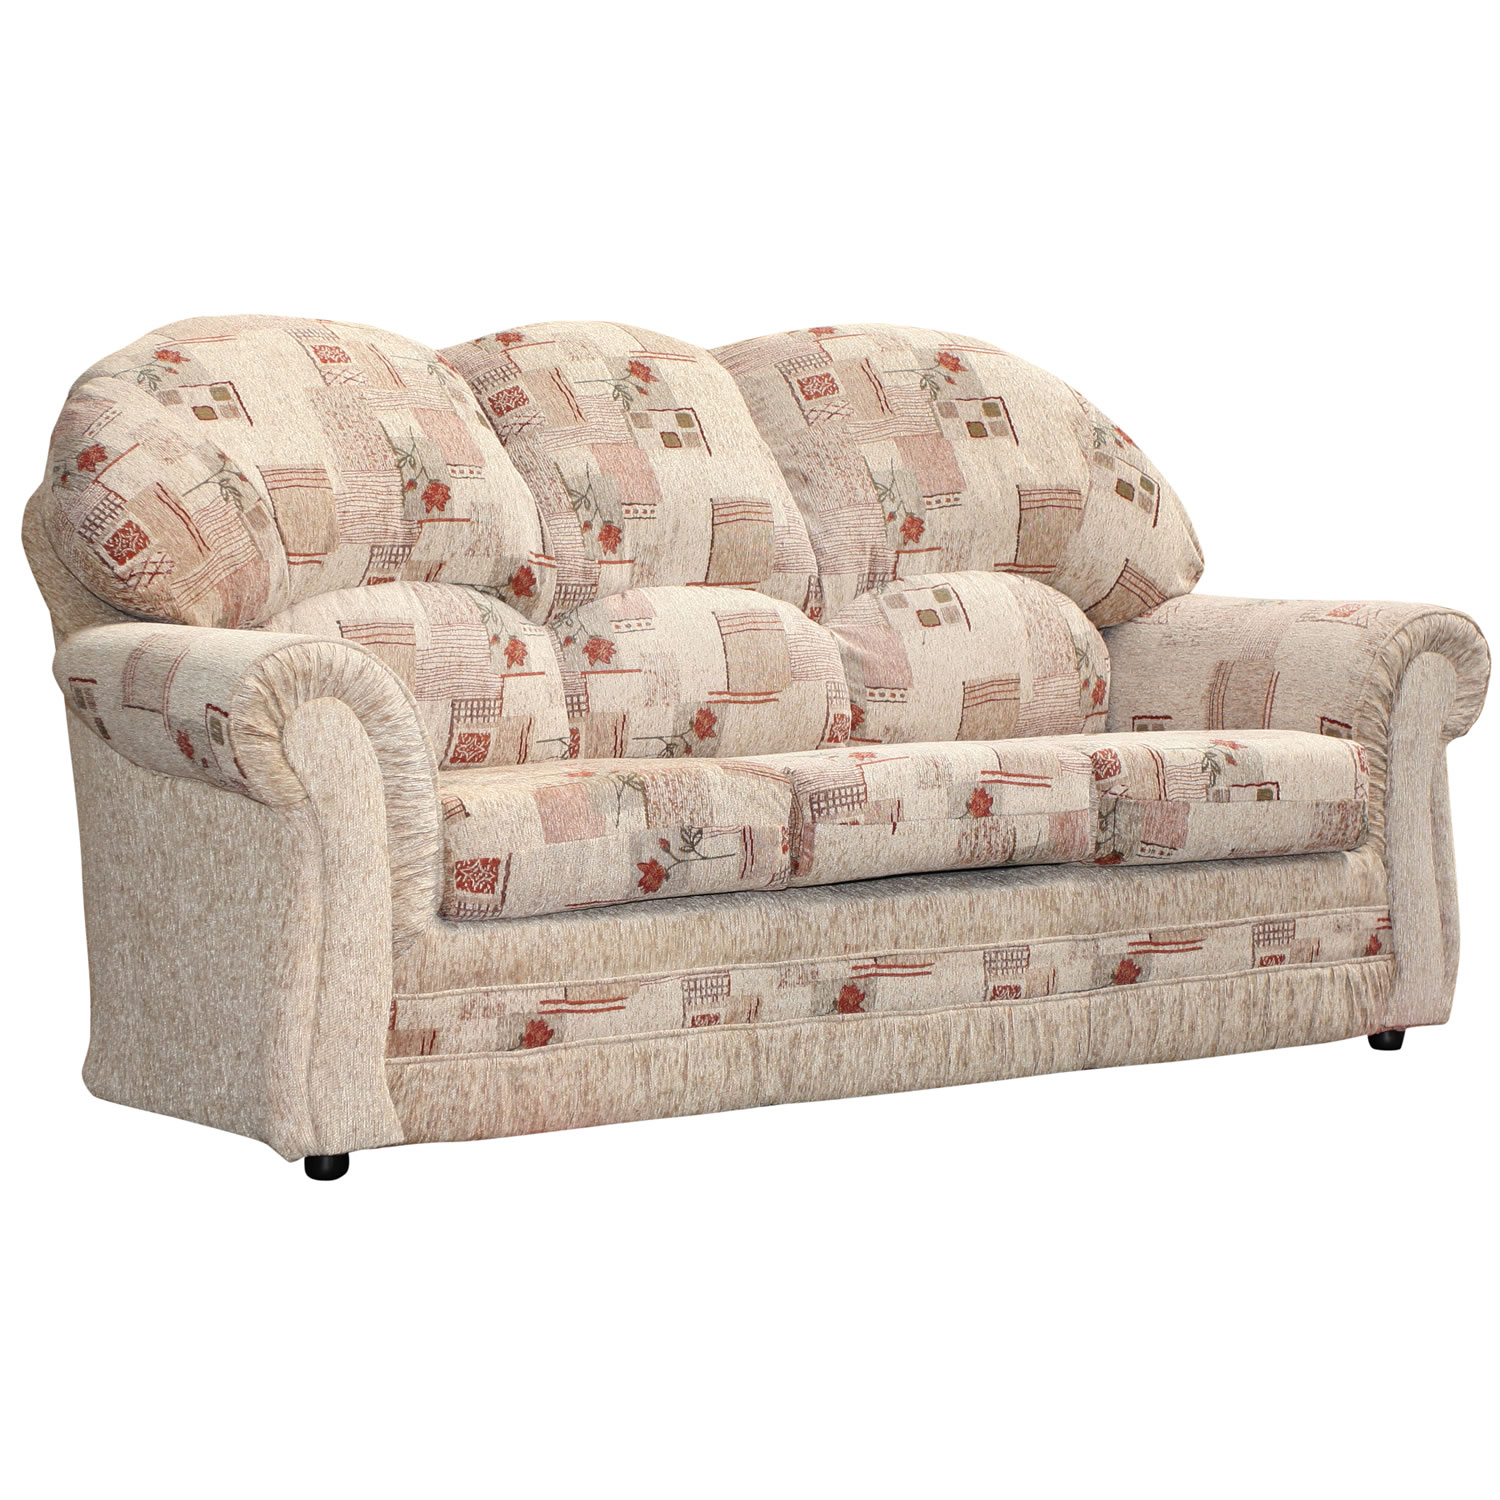 3 Seater Sofa Roma Floral Patterned Beige Fabirc Settee